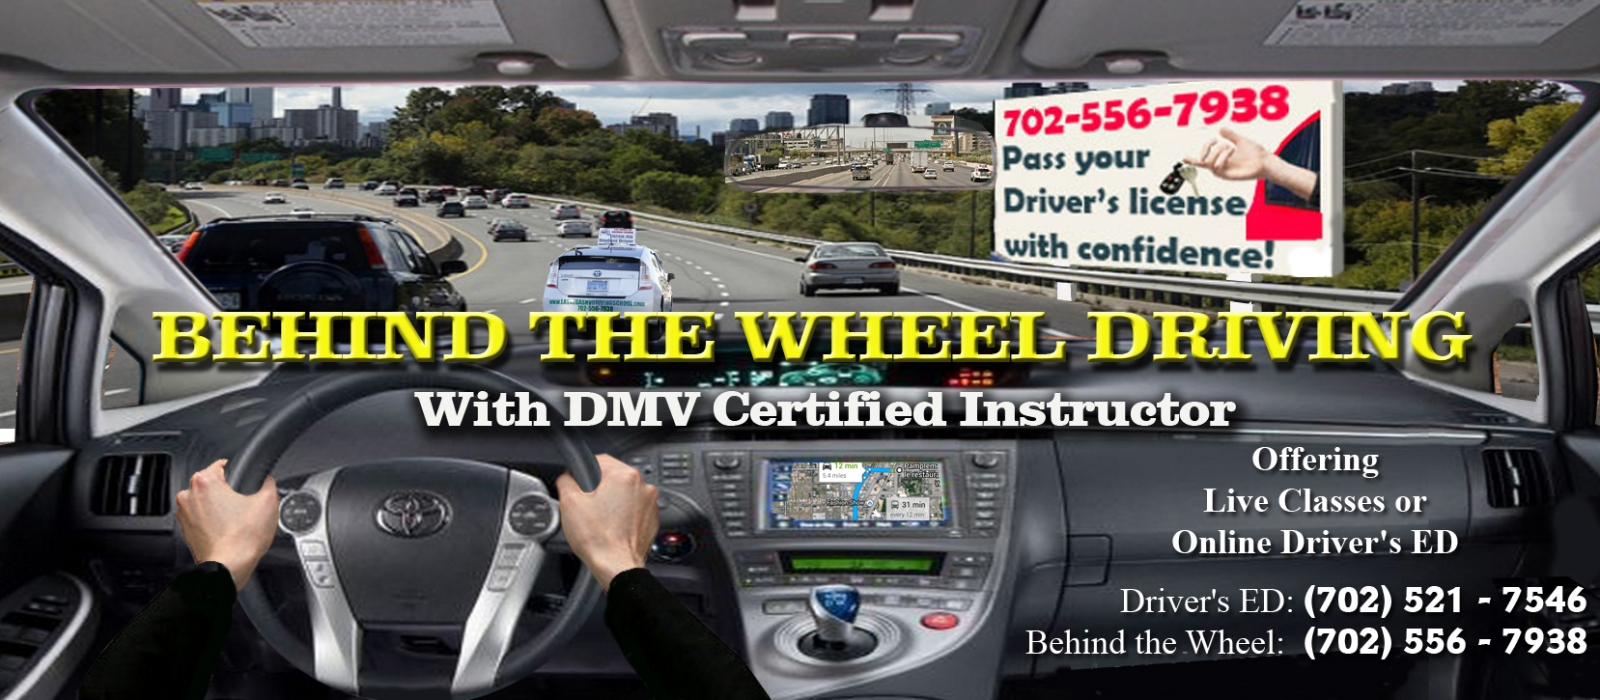 Behind the Wheel driving lessons in Las Vegas